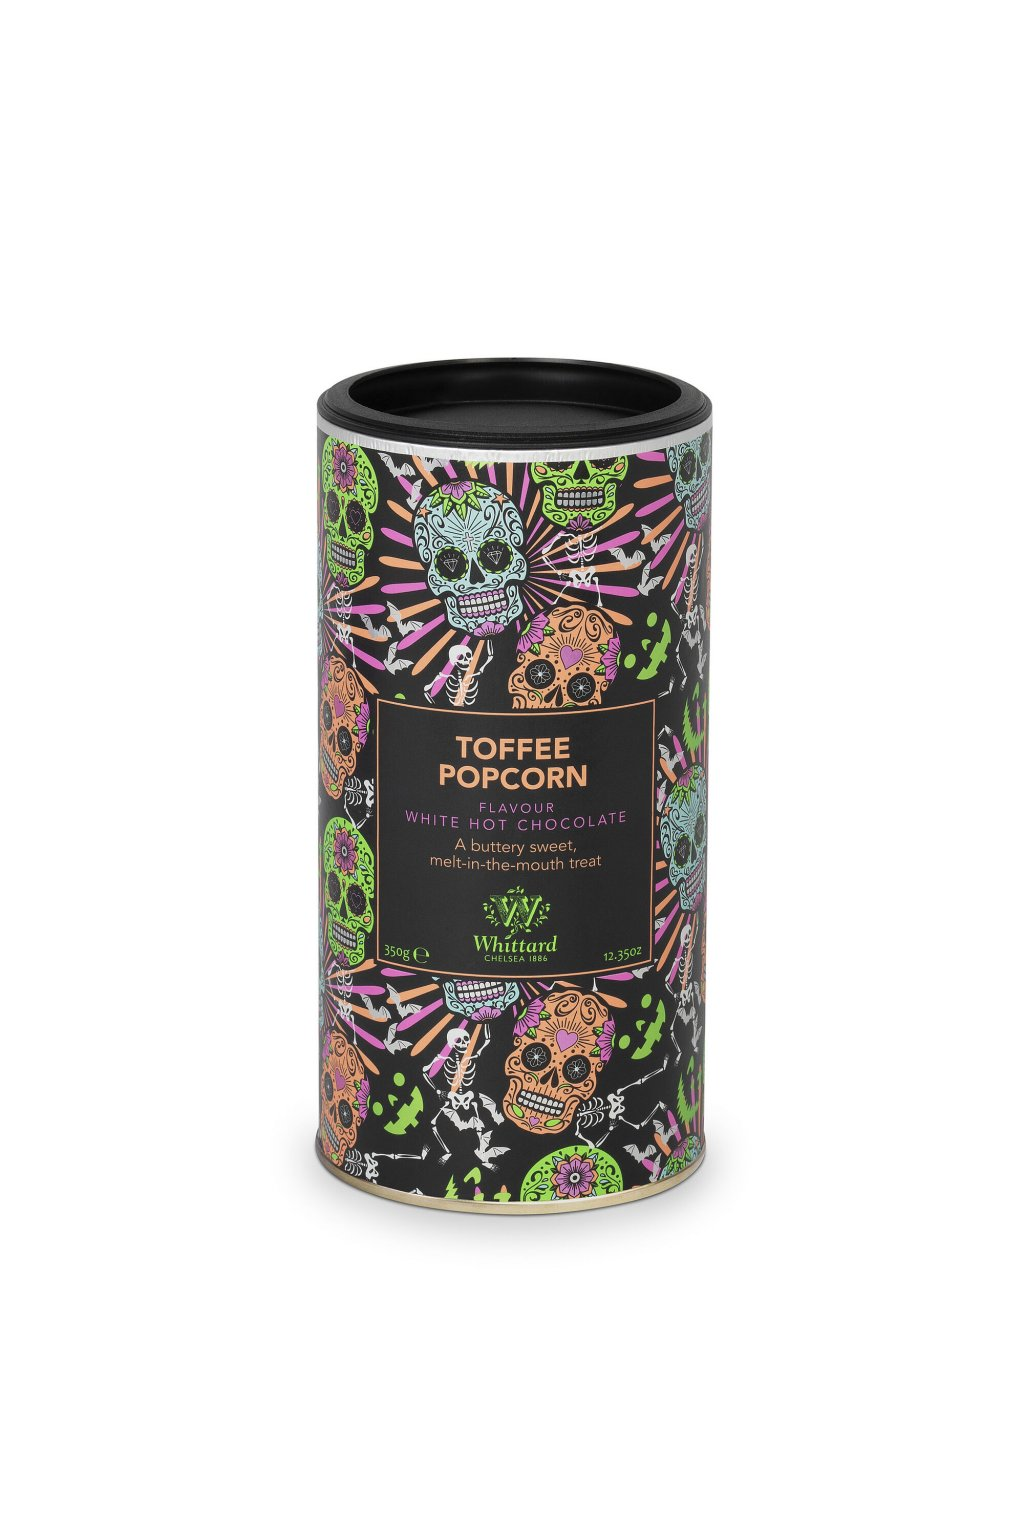 345744 Toffee Popcorn Flavour White Hot Chocolate 1